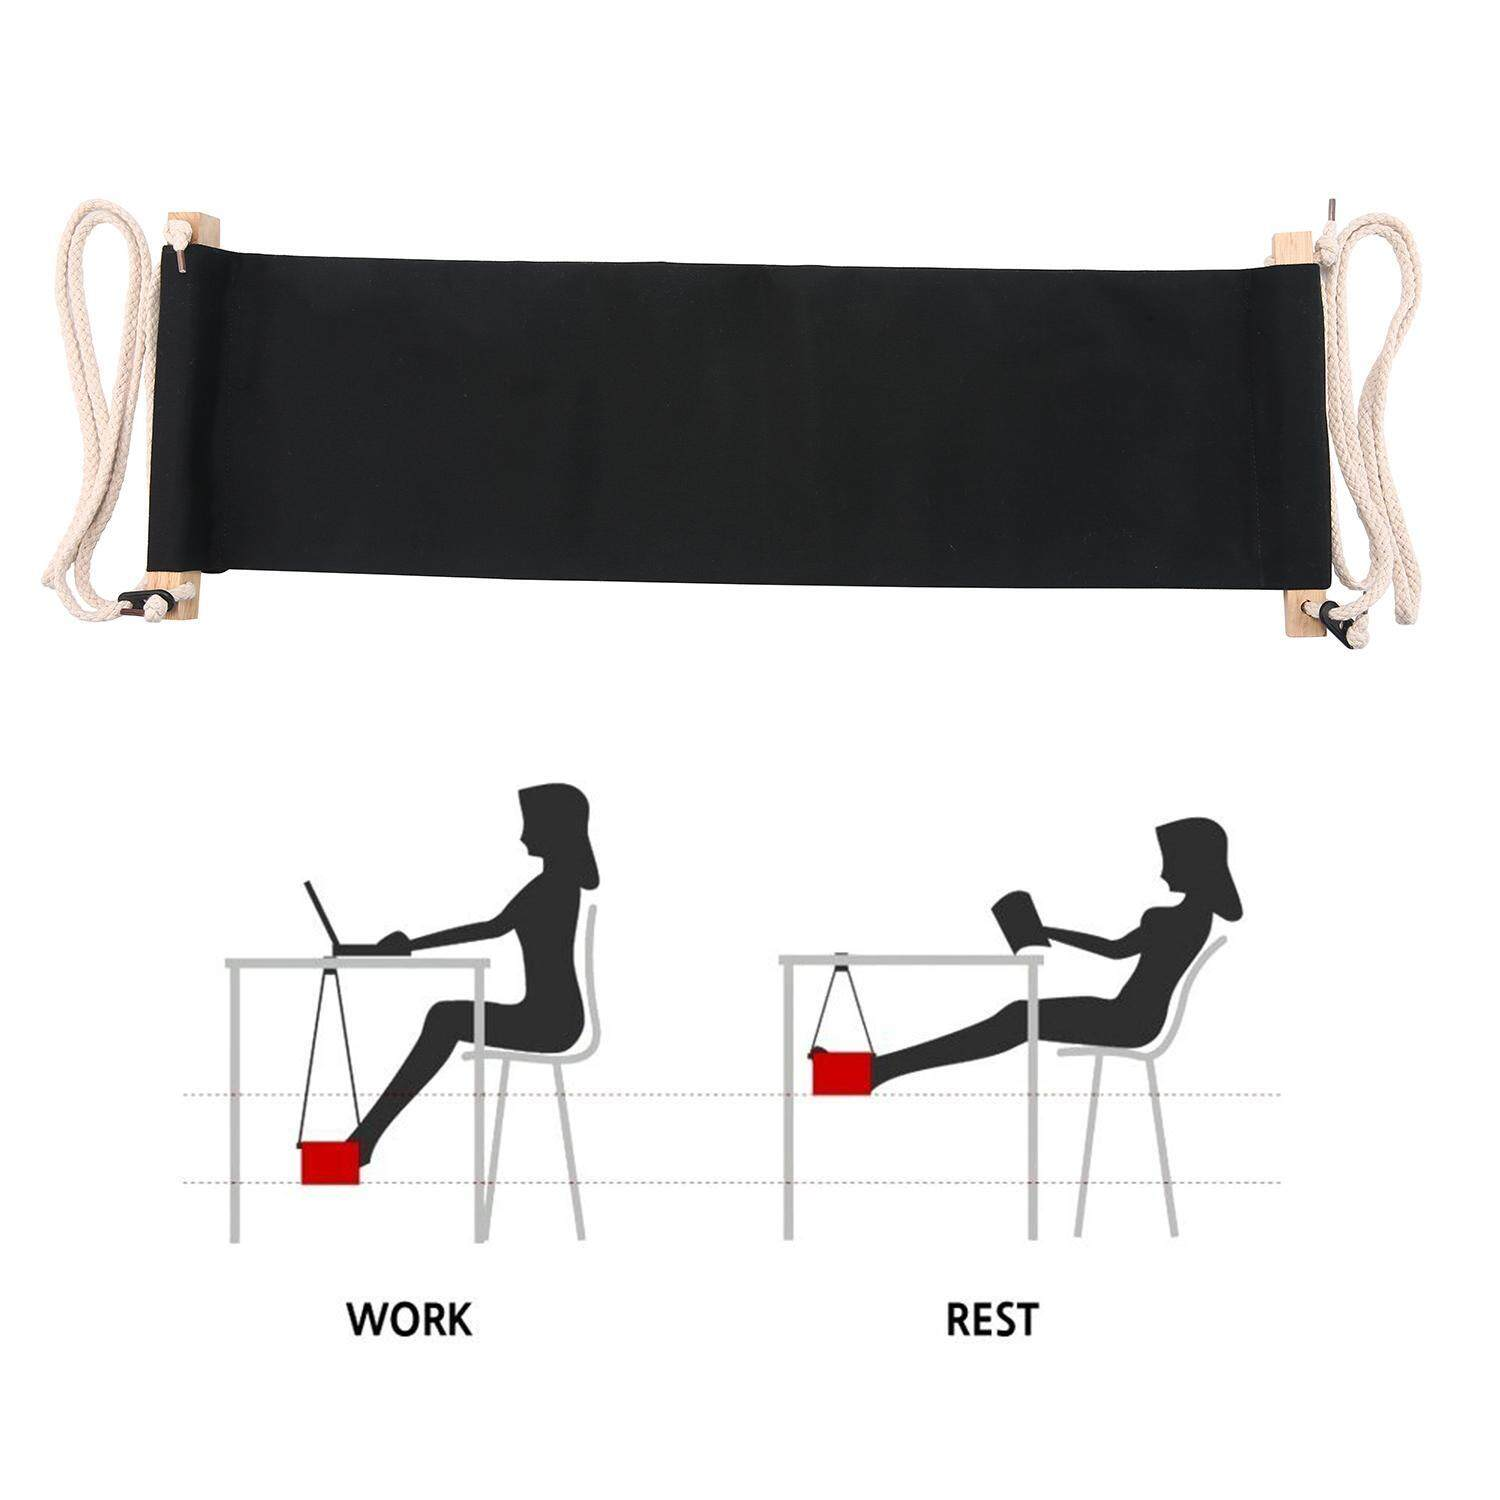 Teekeer Portable Adjustable Mini Office Foot Rest Desk Feet Hammock - intl